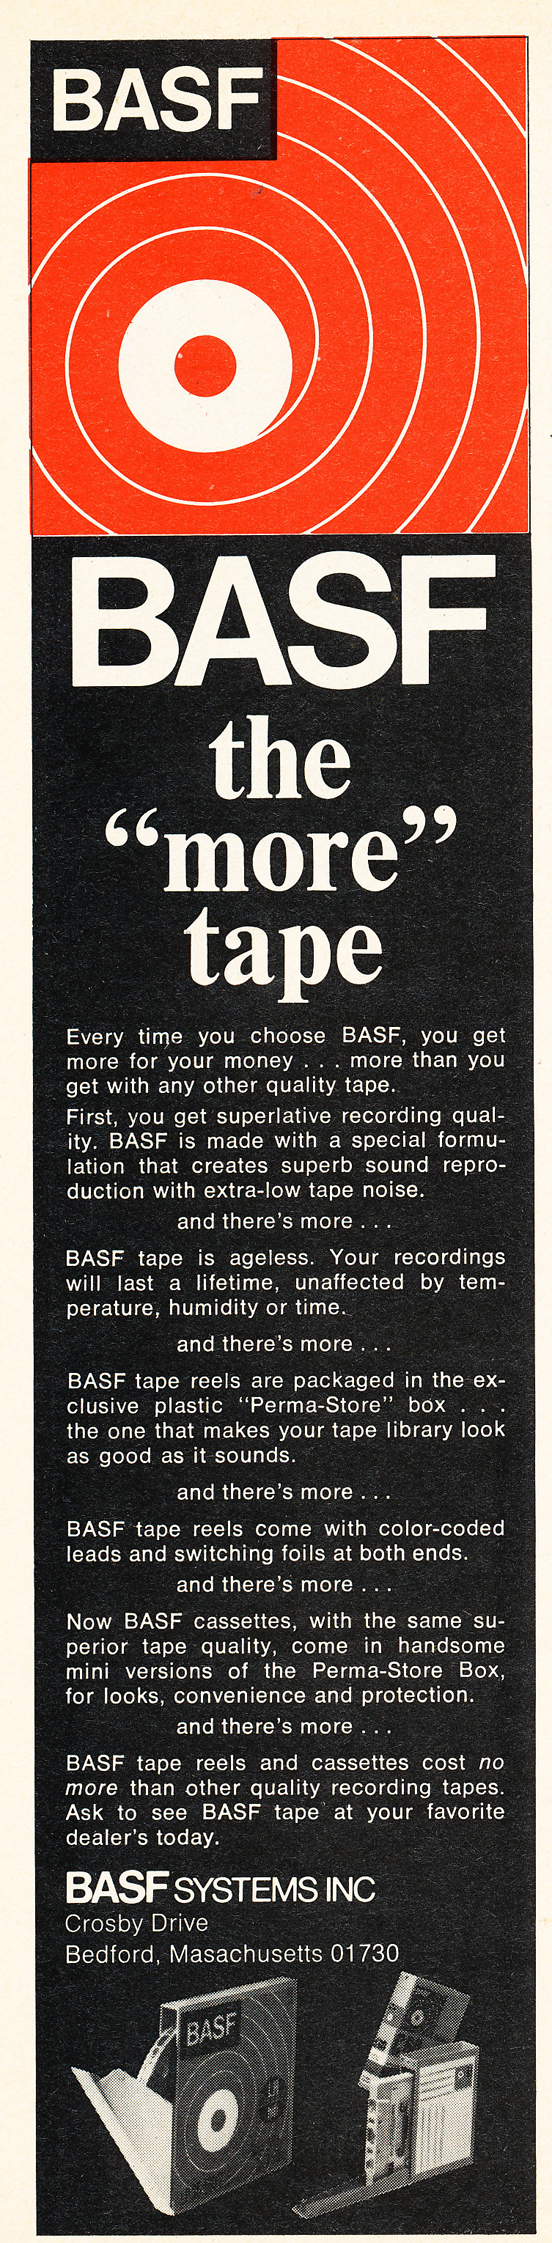 1971 ad for BASF reel to reel recording tape in Reel2ReelTexas.com's vintage recording collection